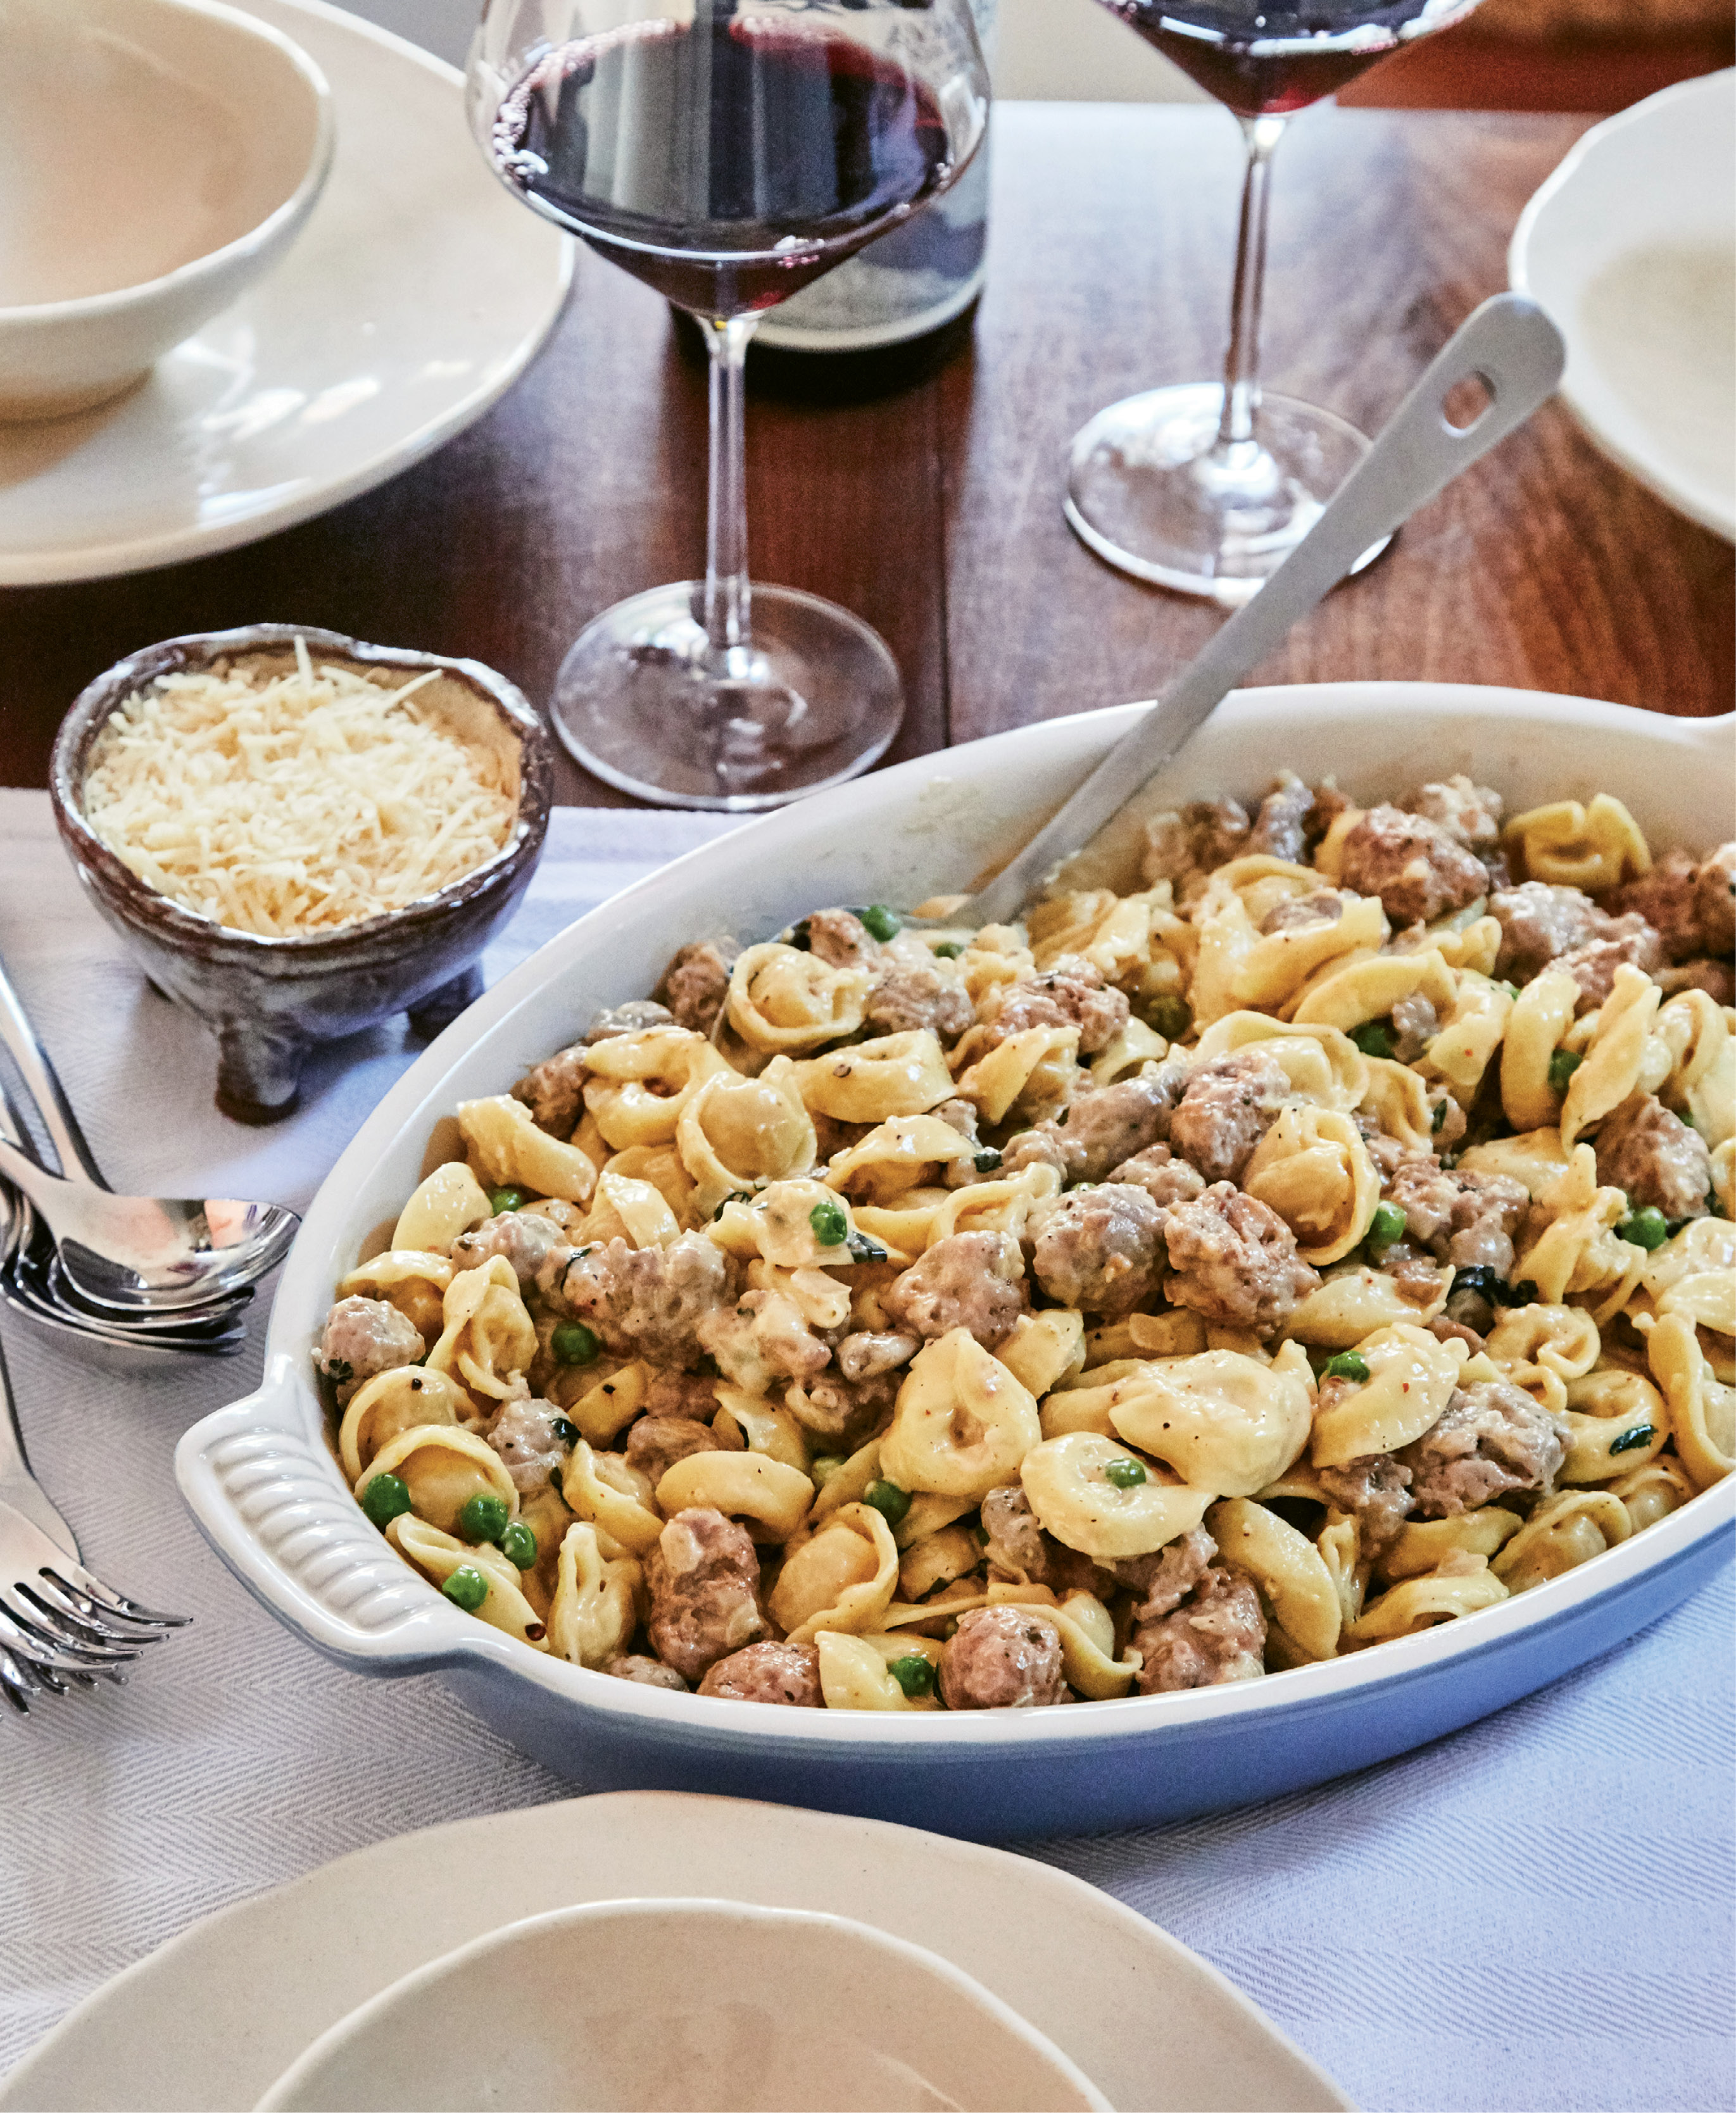 This robust sausage-and-tortellini recipe, passed down from Gillian's grandmother and mother, is a favorite of her Italian relatives, who take comfort in the dish when the weather turns cold and gray.